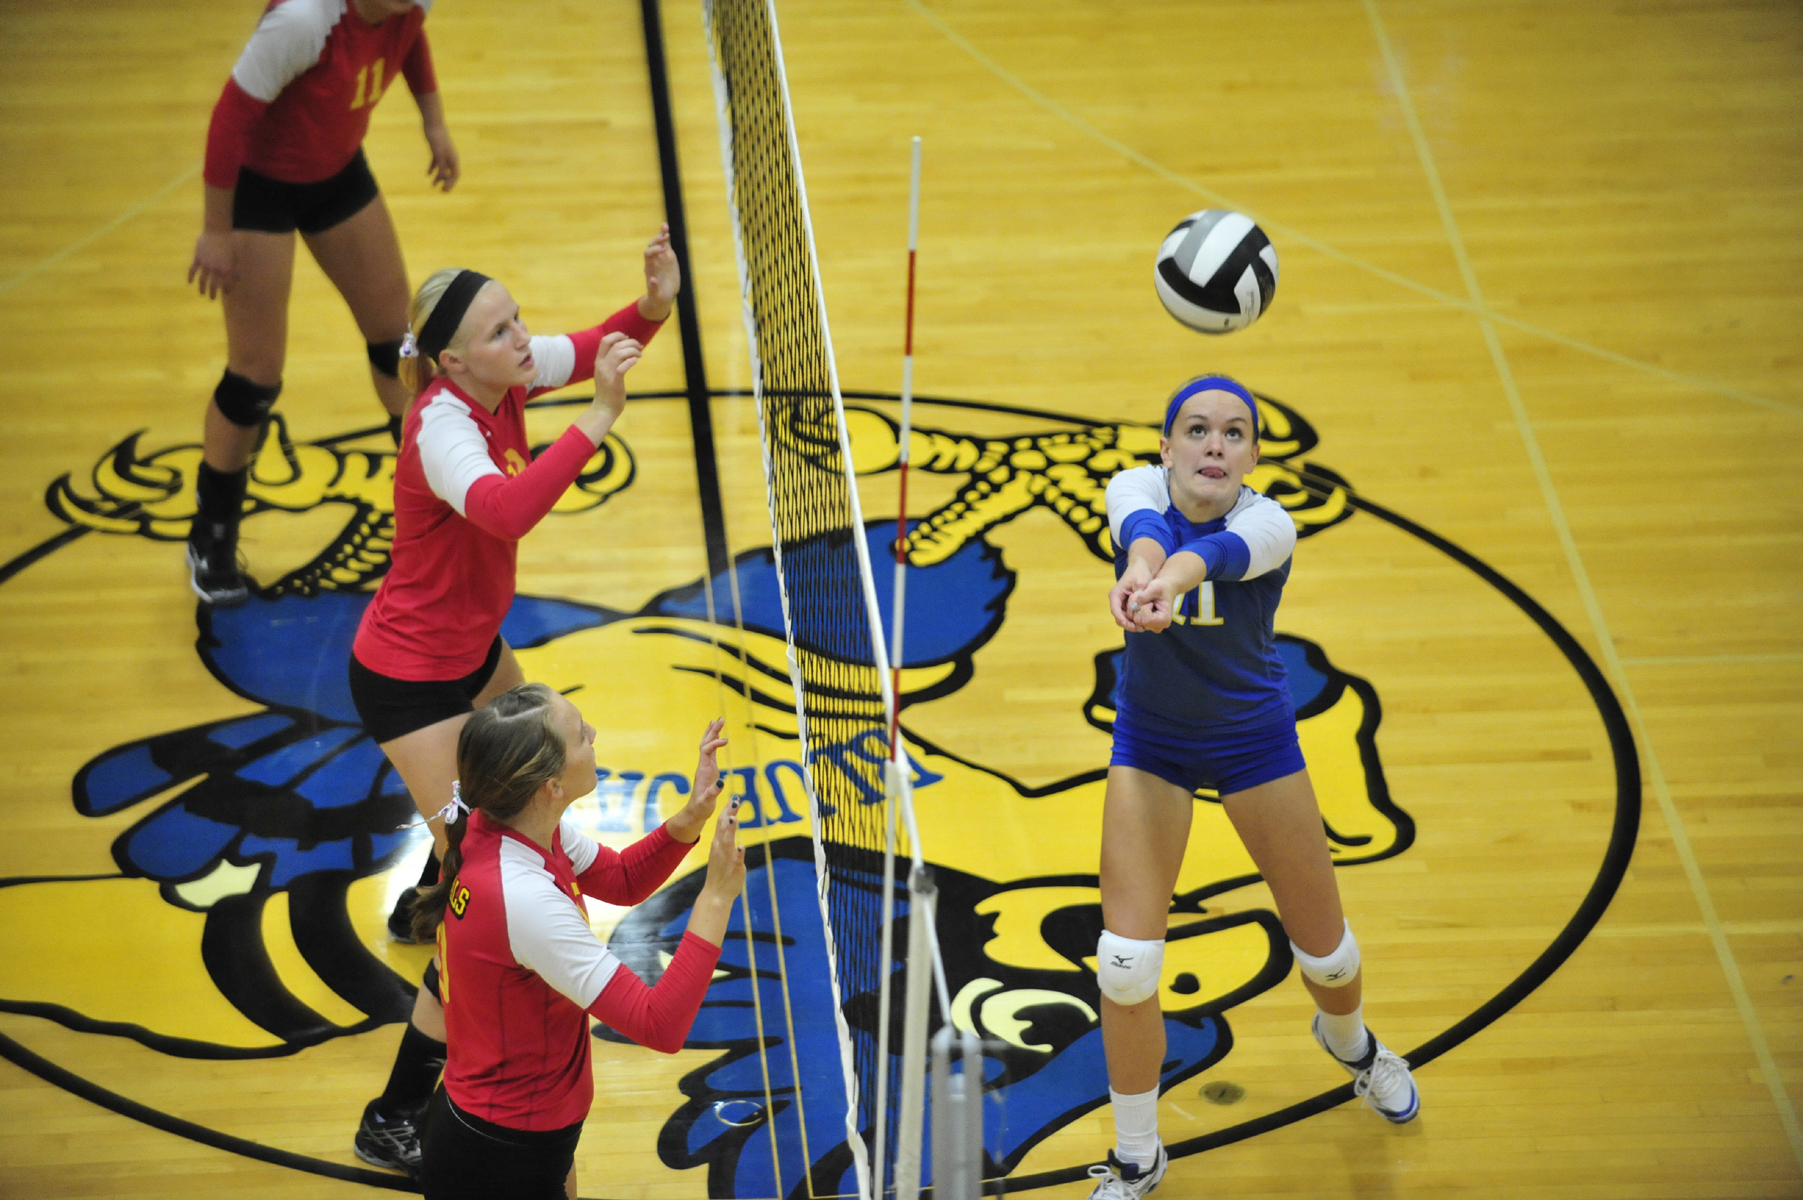 St. John's senior Lauren Utrup keeps the volley going during MAC volleyball action Thursday at Arnzen Gymnasium as New Bremen's Karli Jones and Haley Moeller await the action. The visiting Cardinals swept the Jays.